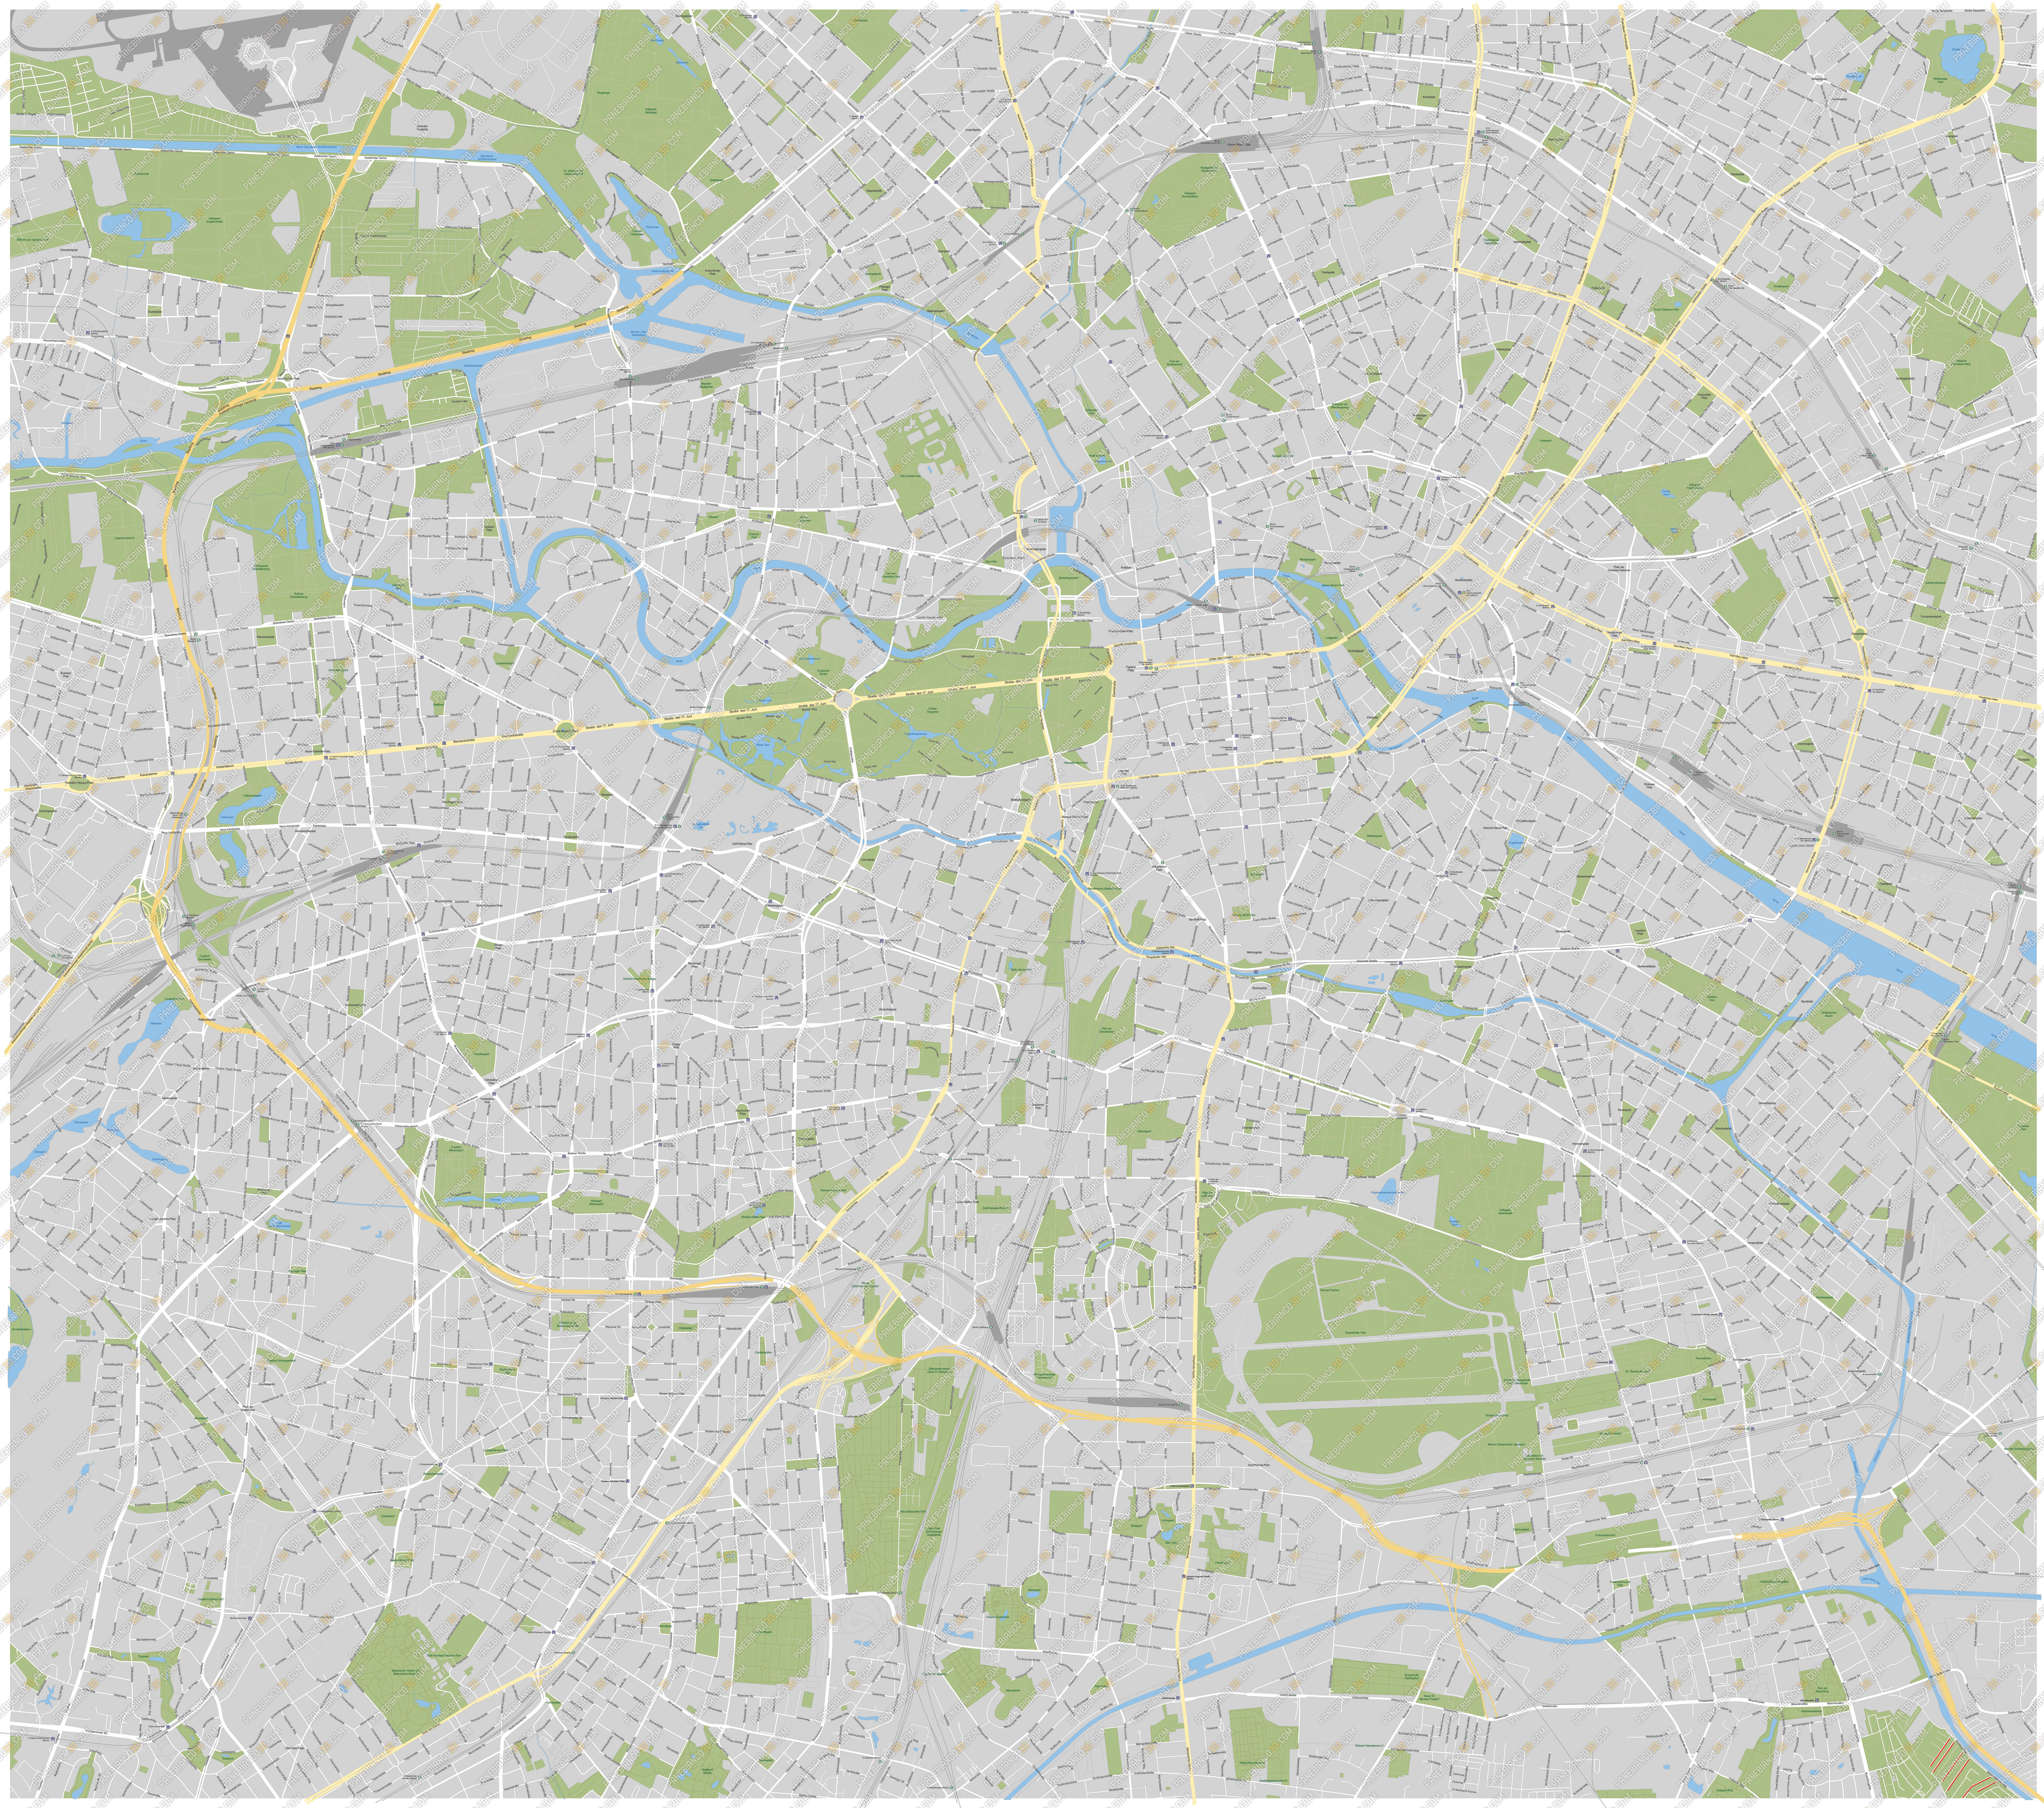 Berlin Map In Vectors A High Res Scalable And Editable City Map - Map of berlin city centre